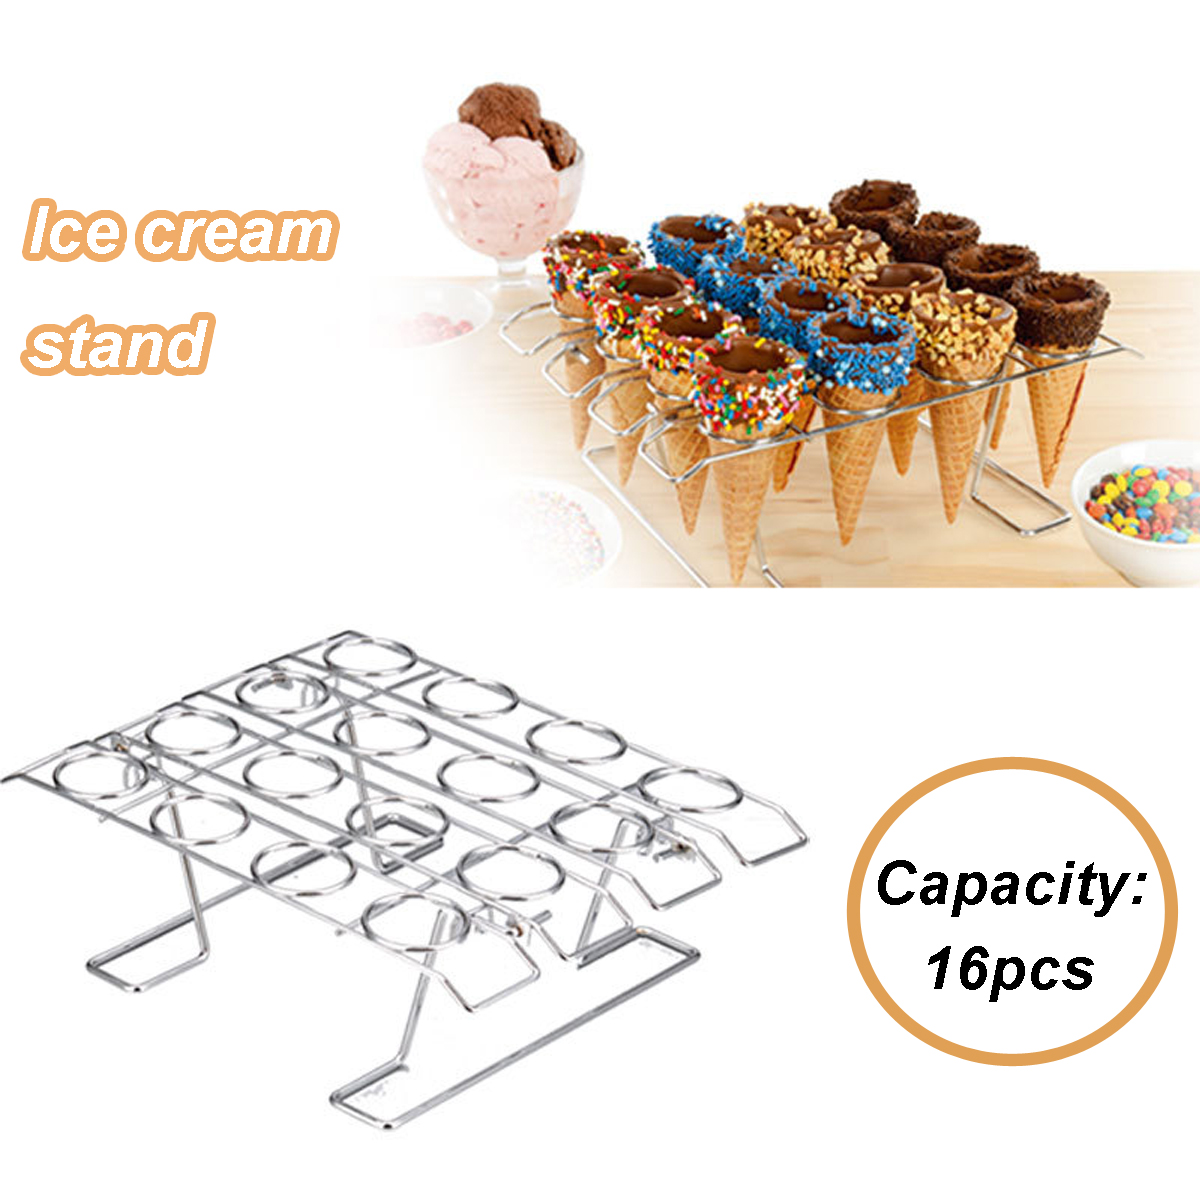 Cupcake Cone Baking Rack Cake Ice Cream Cone Iron 16-Cavity Baking Decorating Holder Stand Cooling